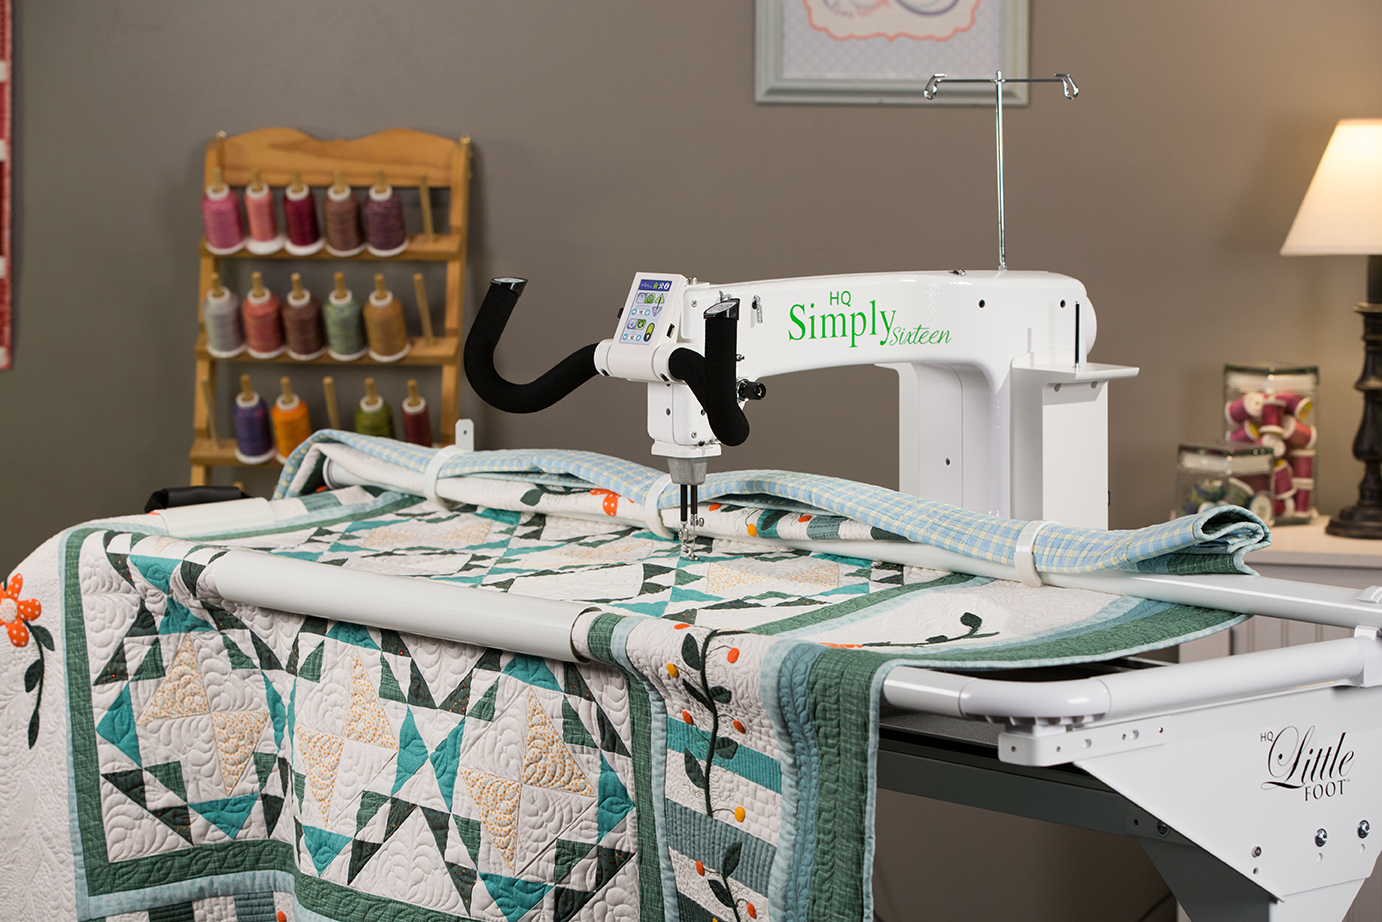 Handi Quilter Simply 16